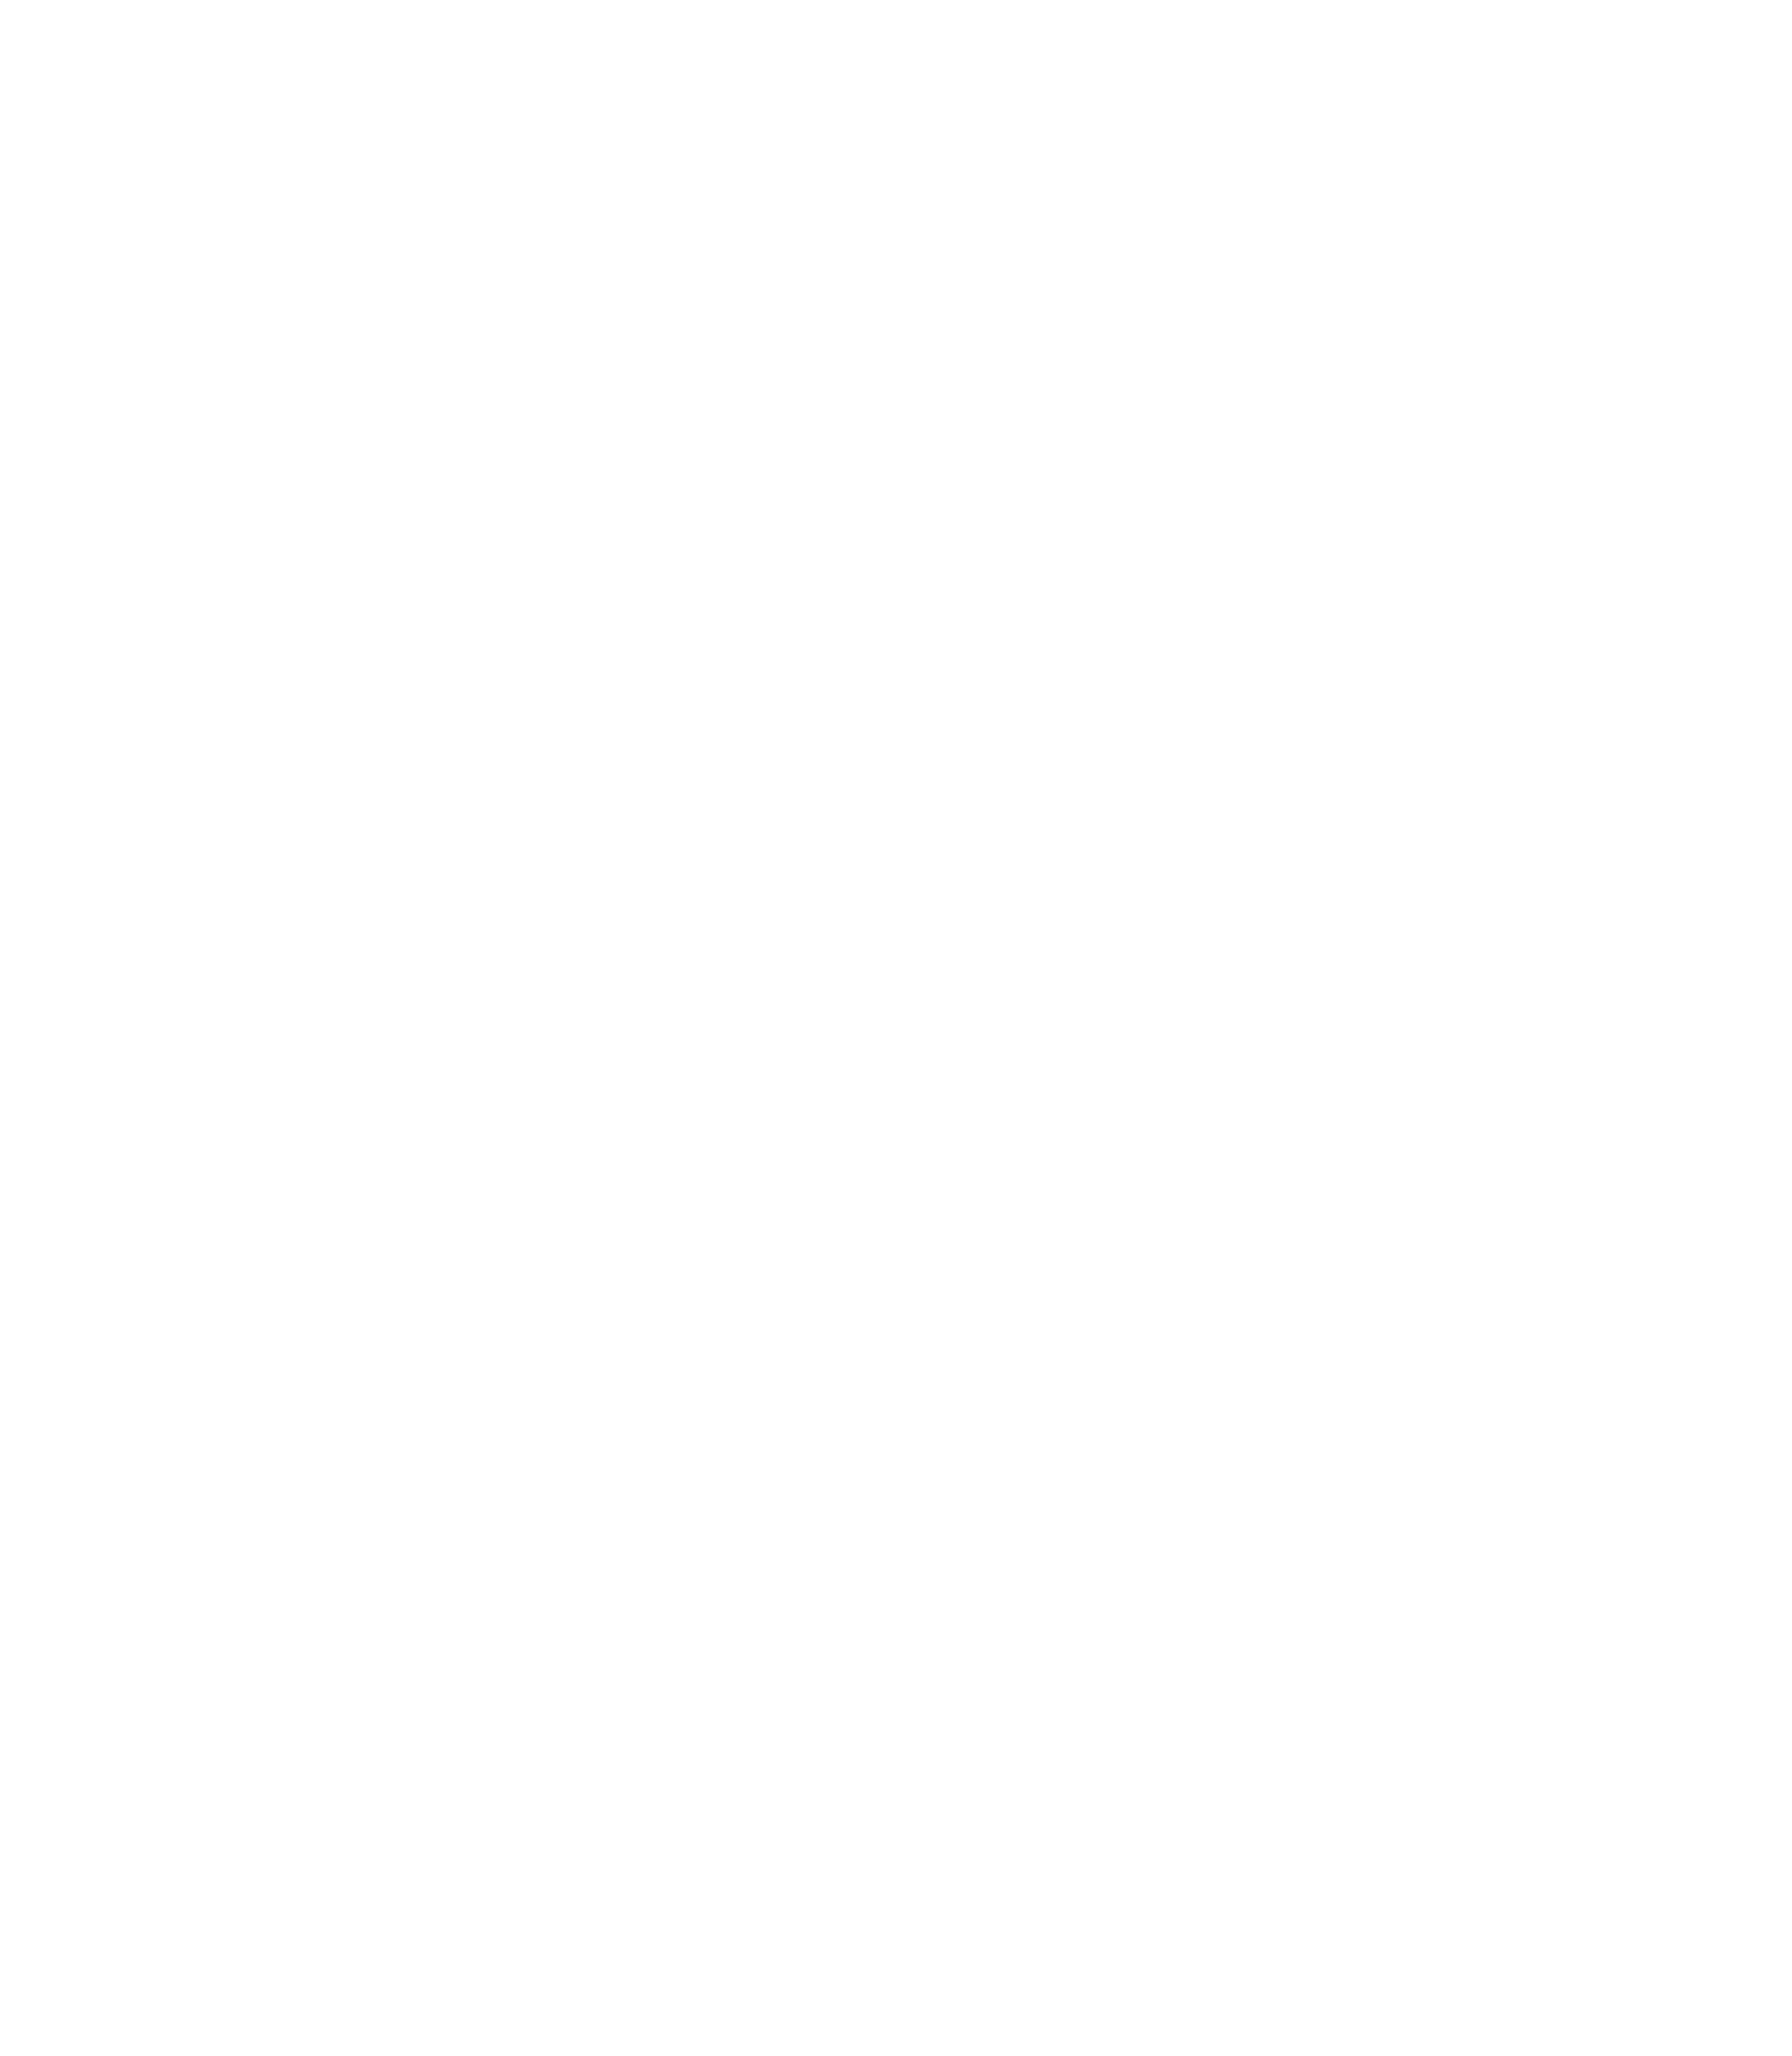 Flying Saucer logo